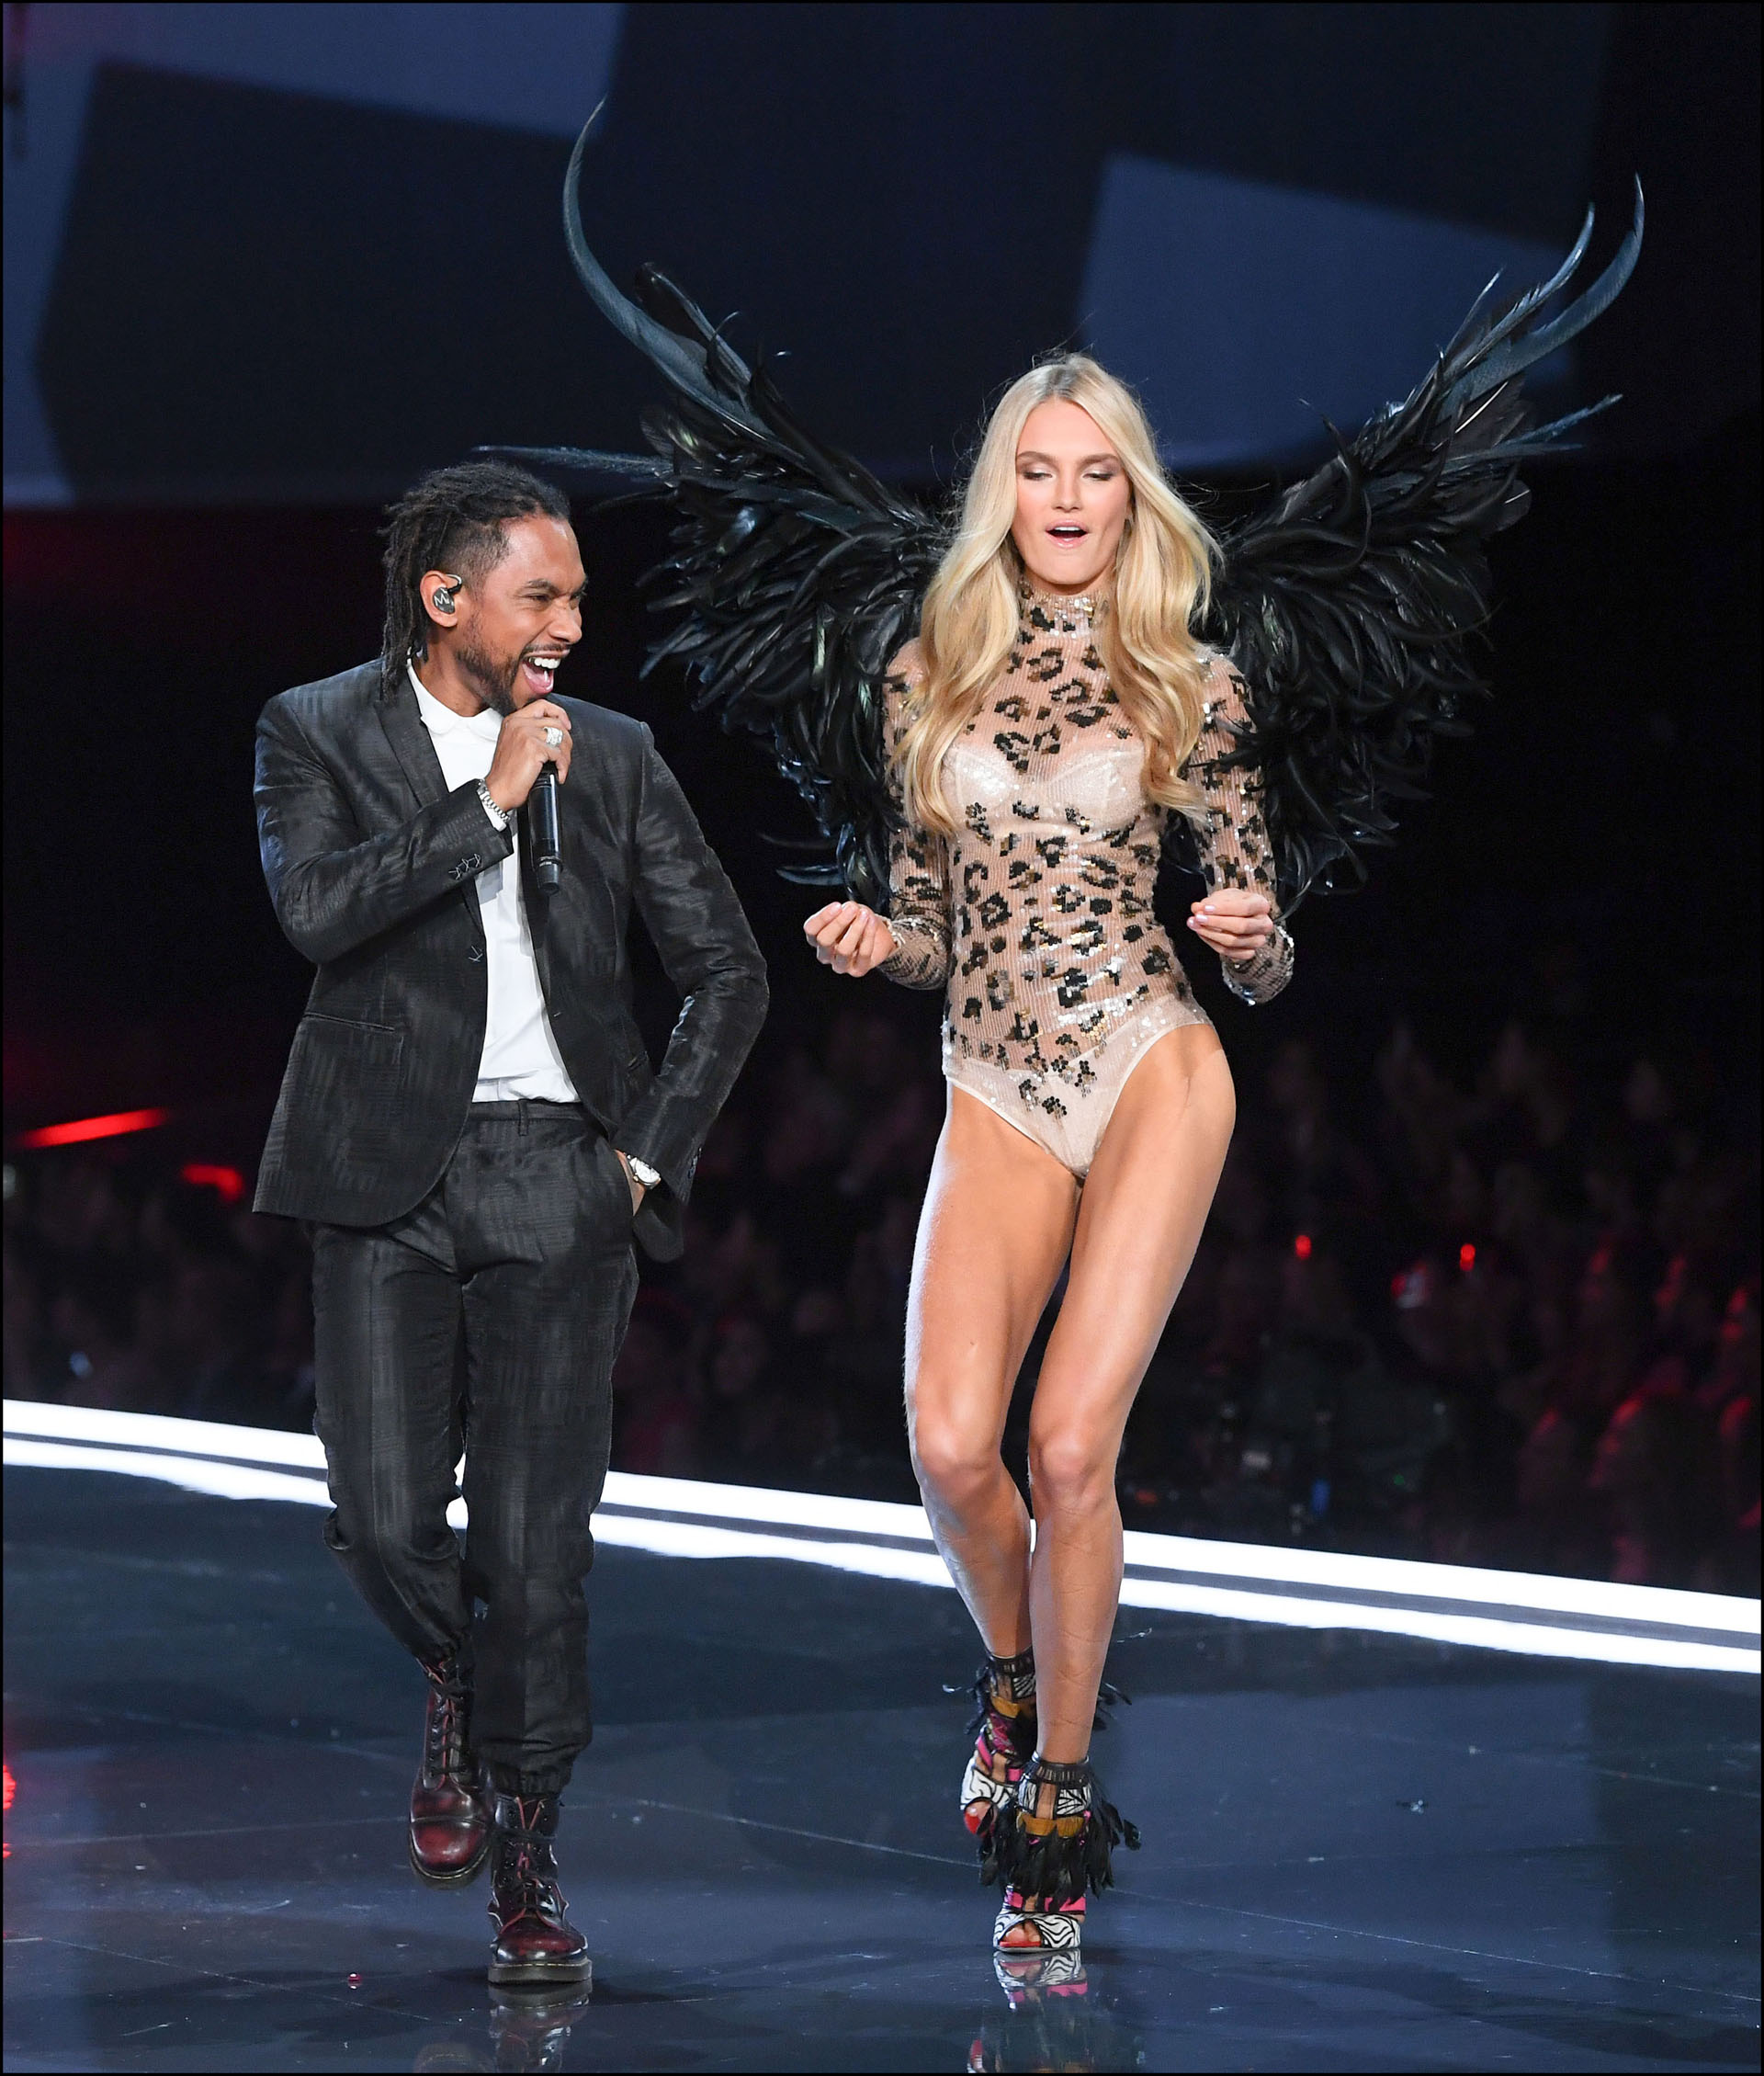 Romee Strijd is seen on stage at the Victoria